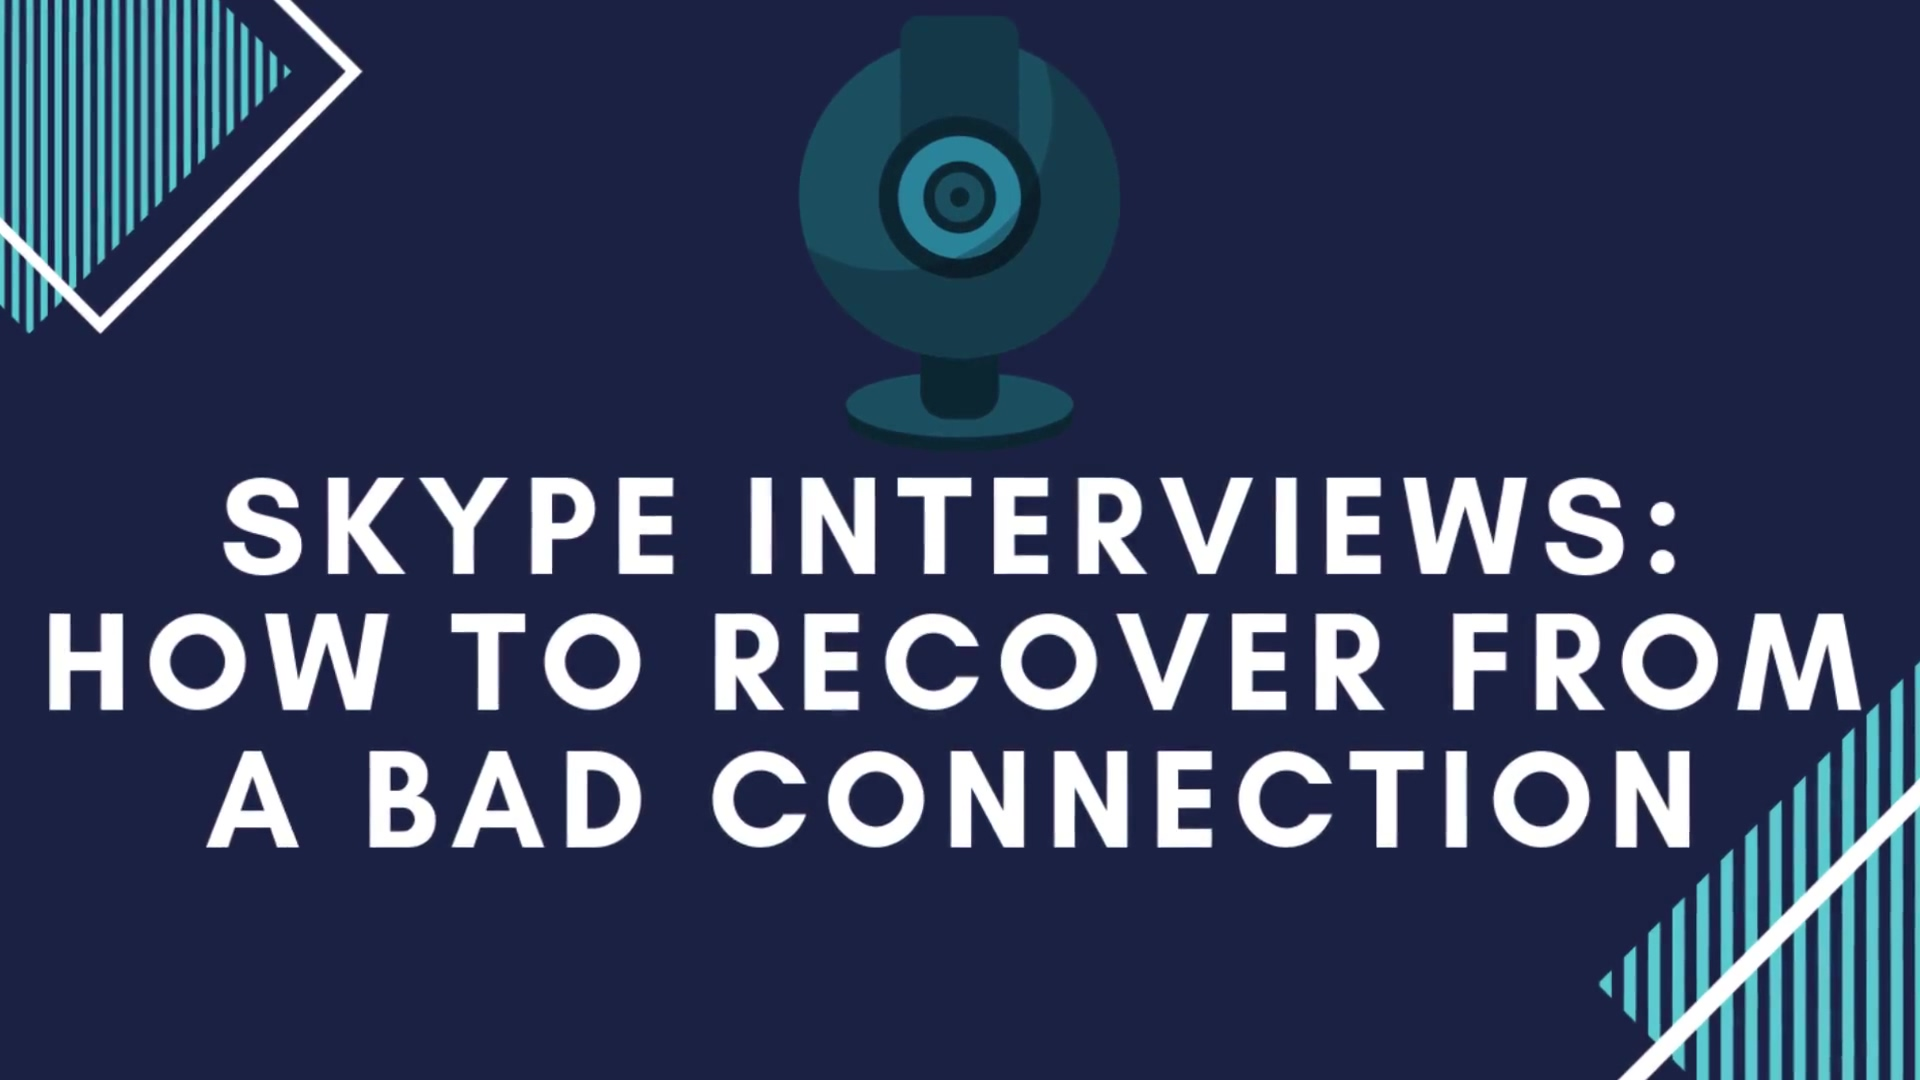 sky-interviews-how-to-recover-from-bad-connection (2)